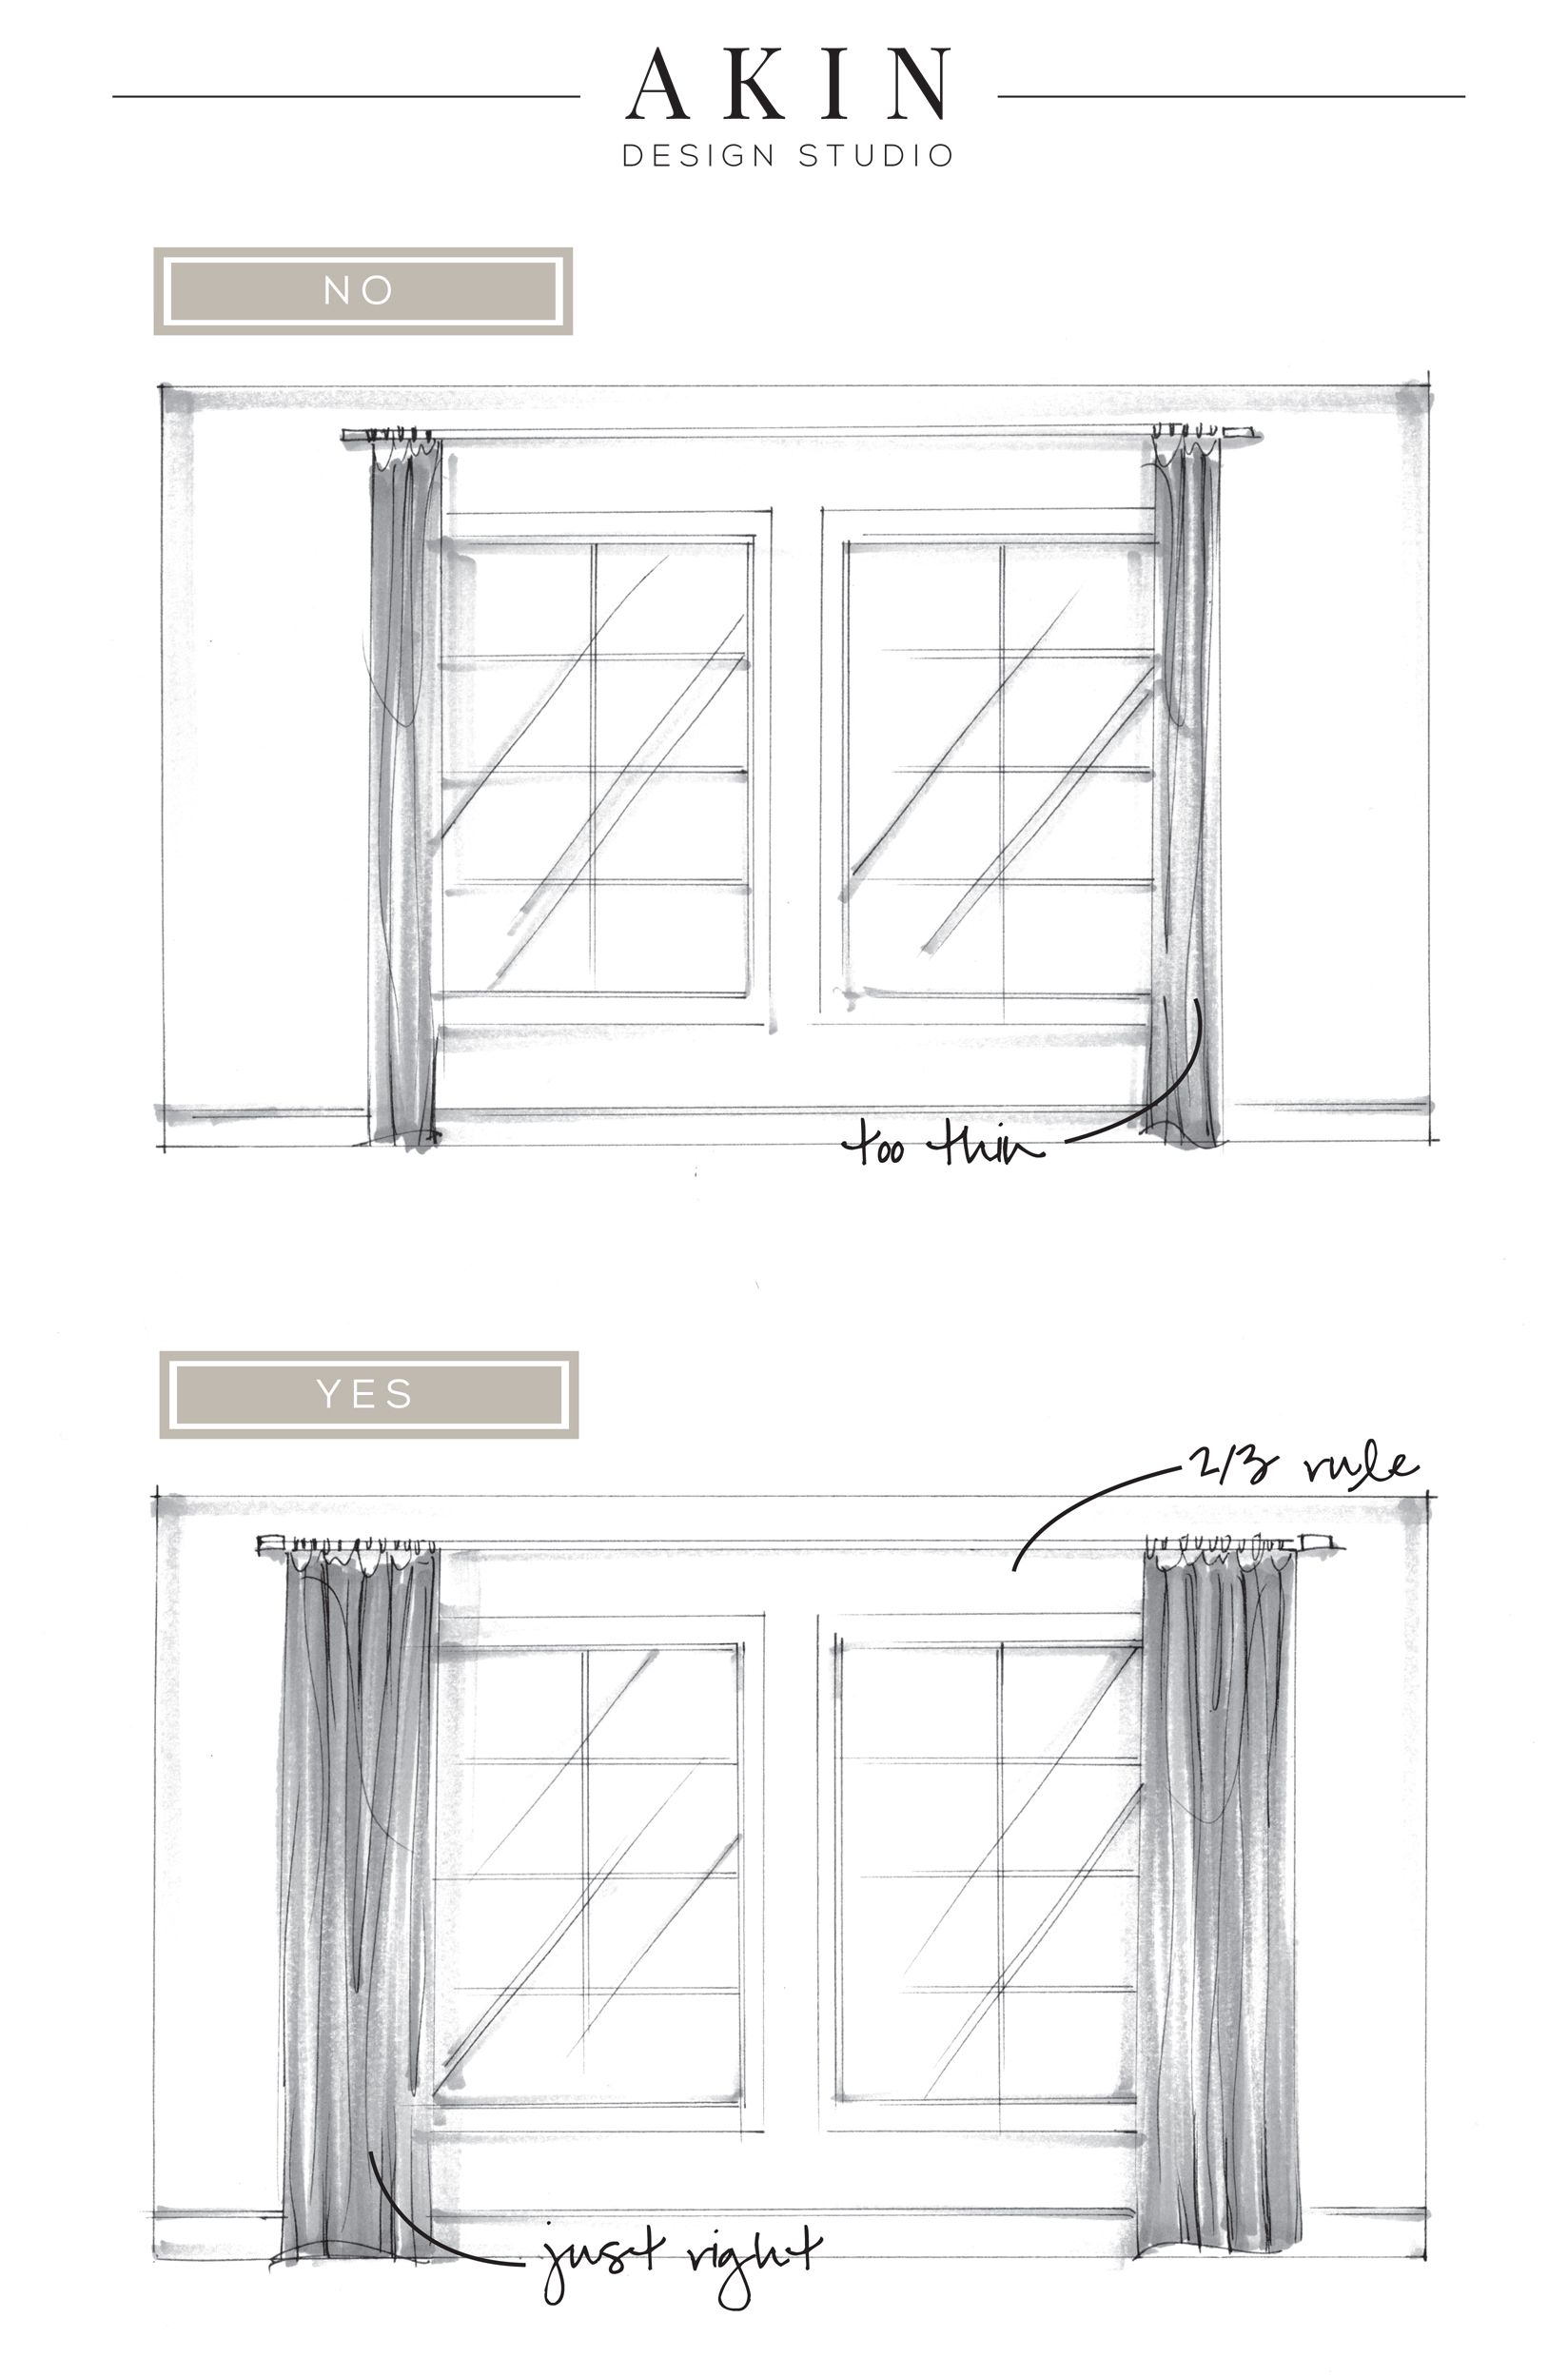 How to hang drapery panels | Akin Design Studio Blog